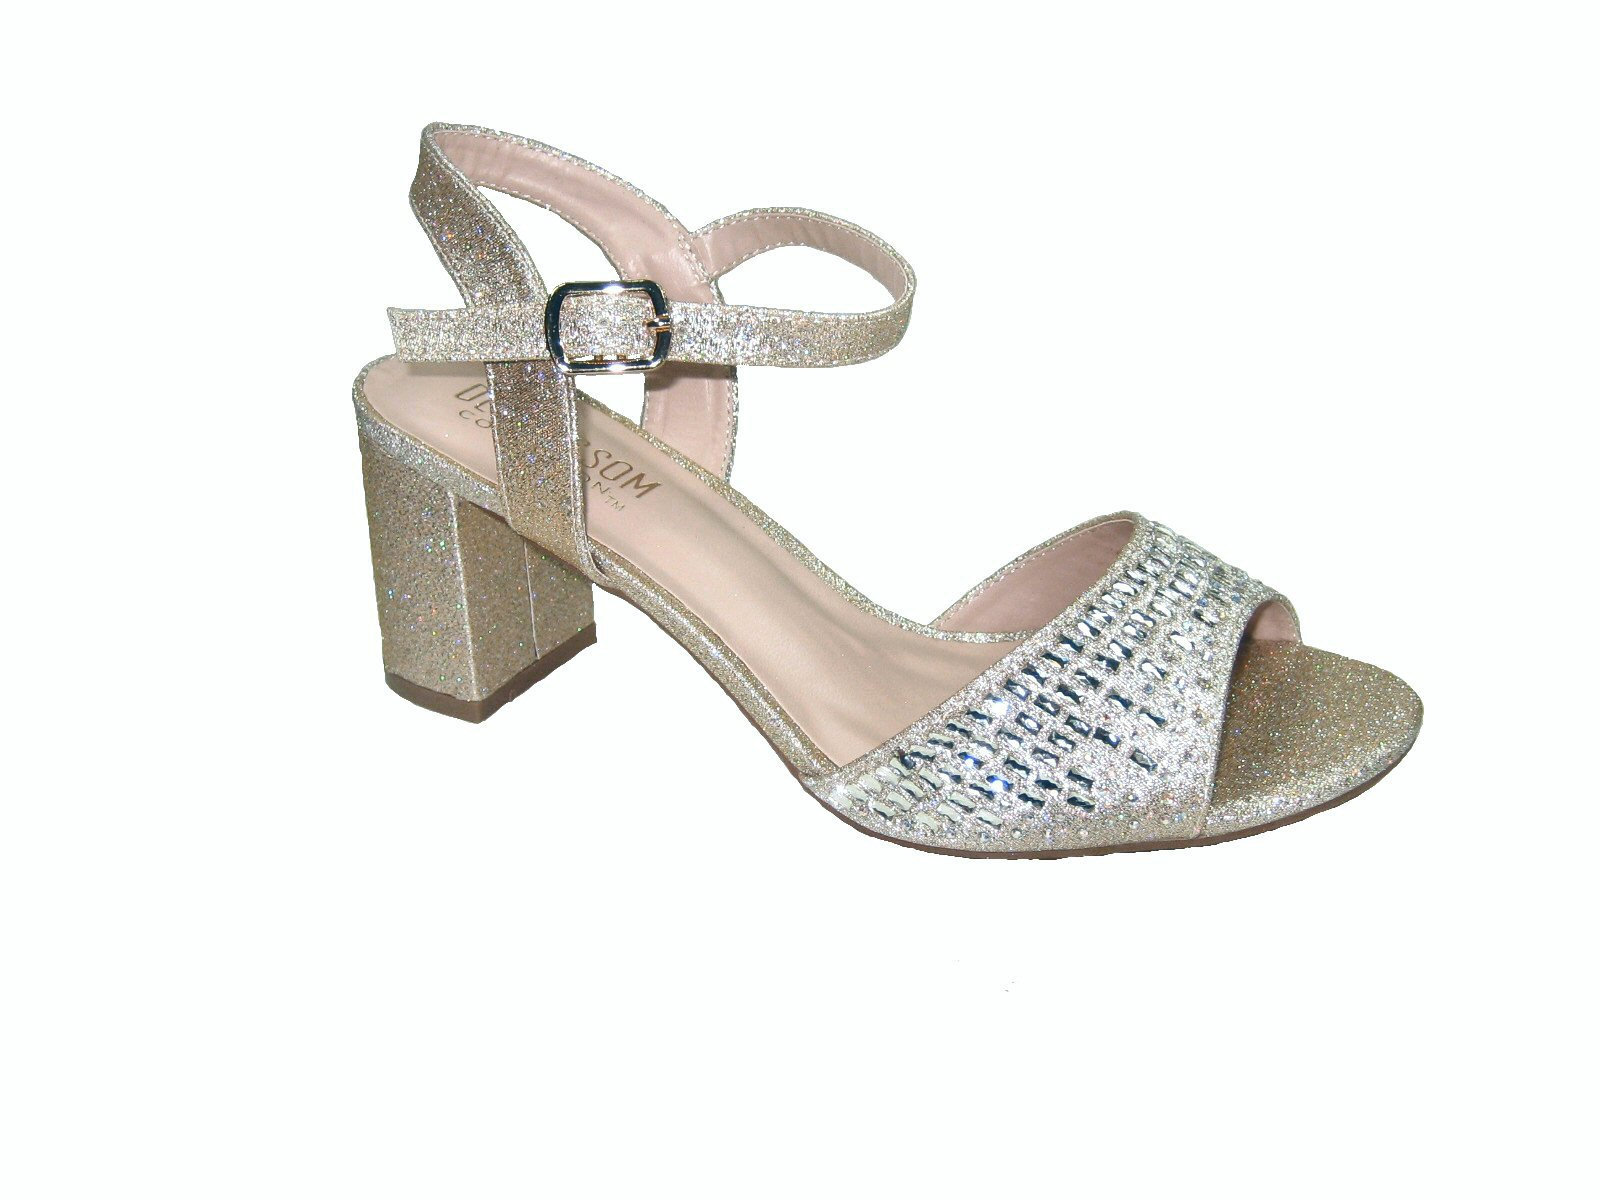 92a6758dc92 Blossom amber-9 strappy nude sparkle shimmer 3 inch block heel party sandals